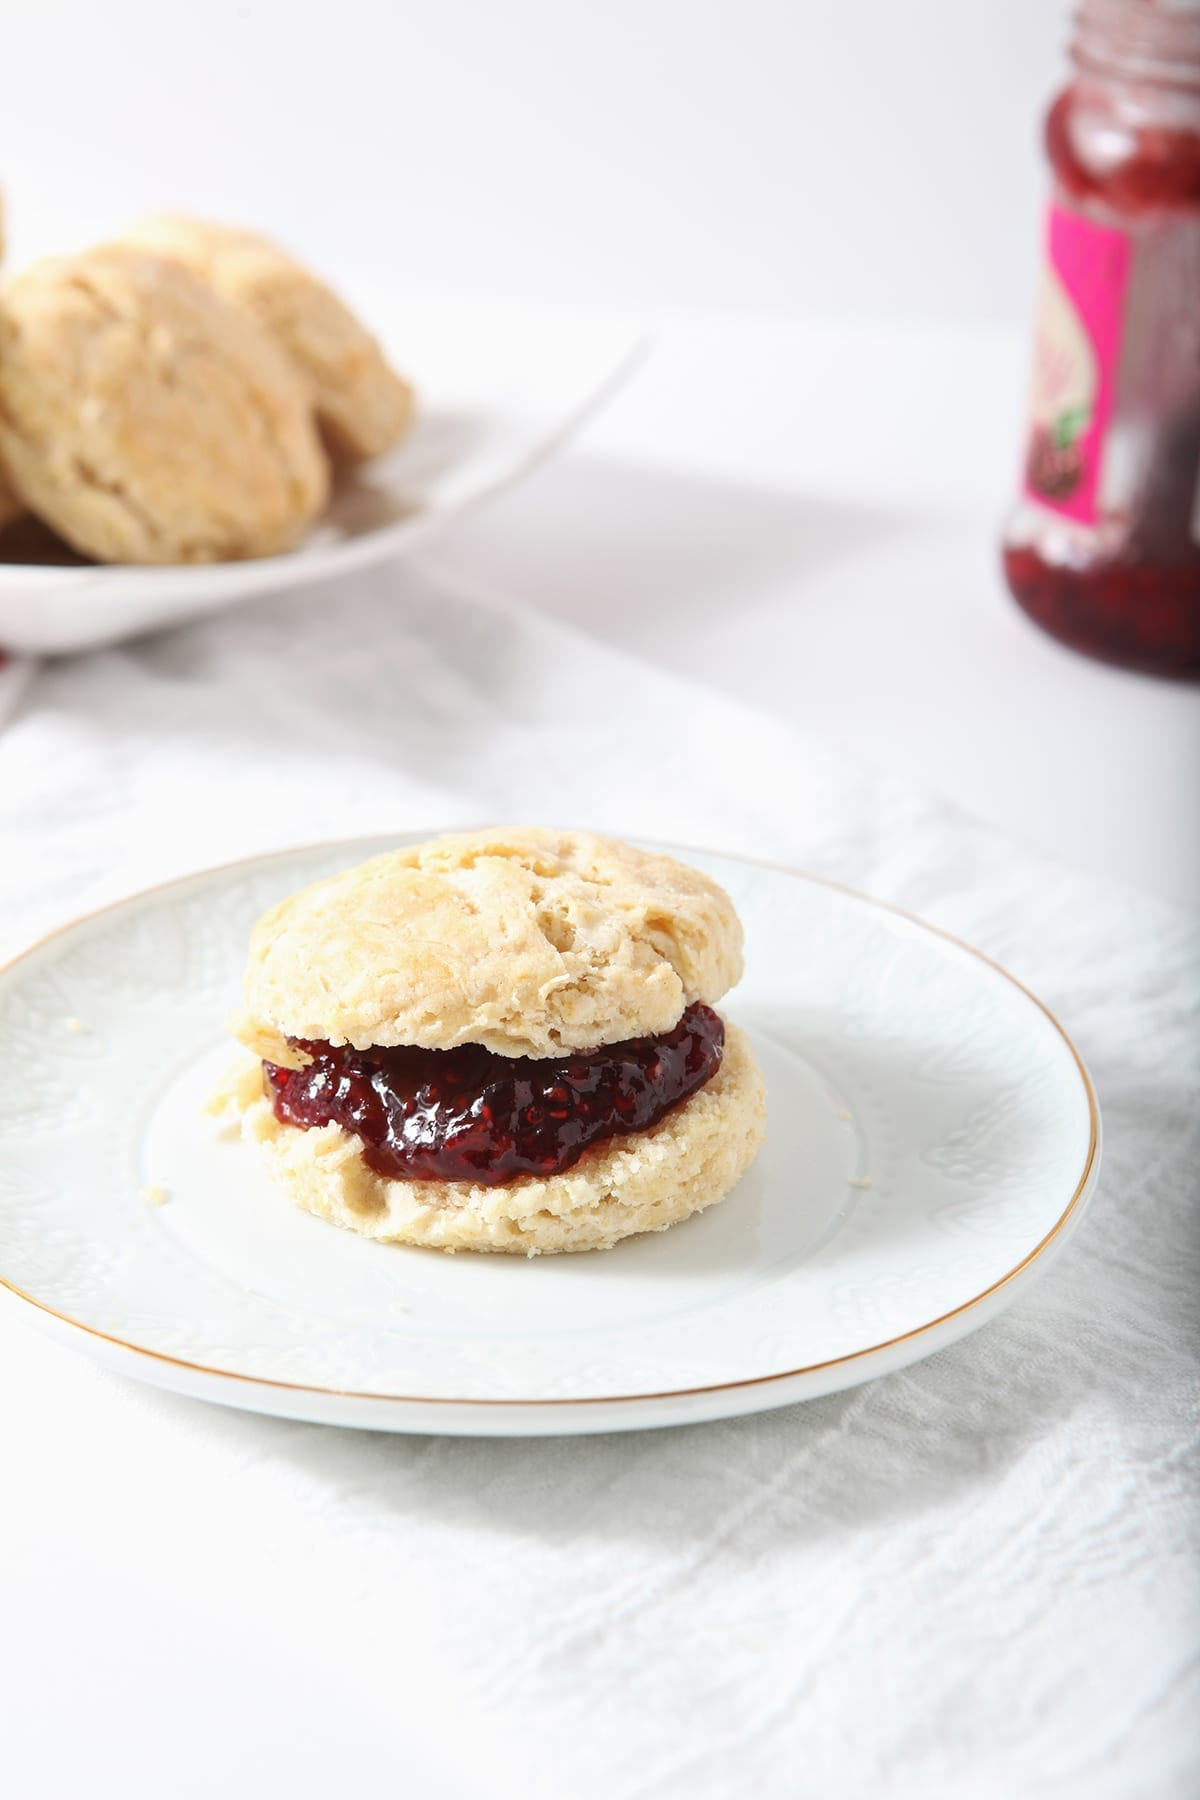 A biscuit with raspberry jam on a white plate with other biscuits and jam in the background